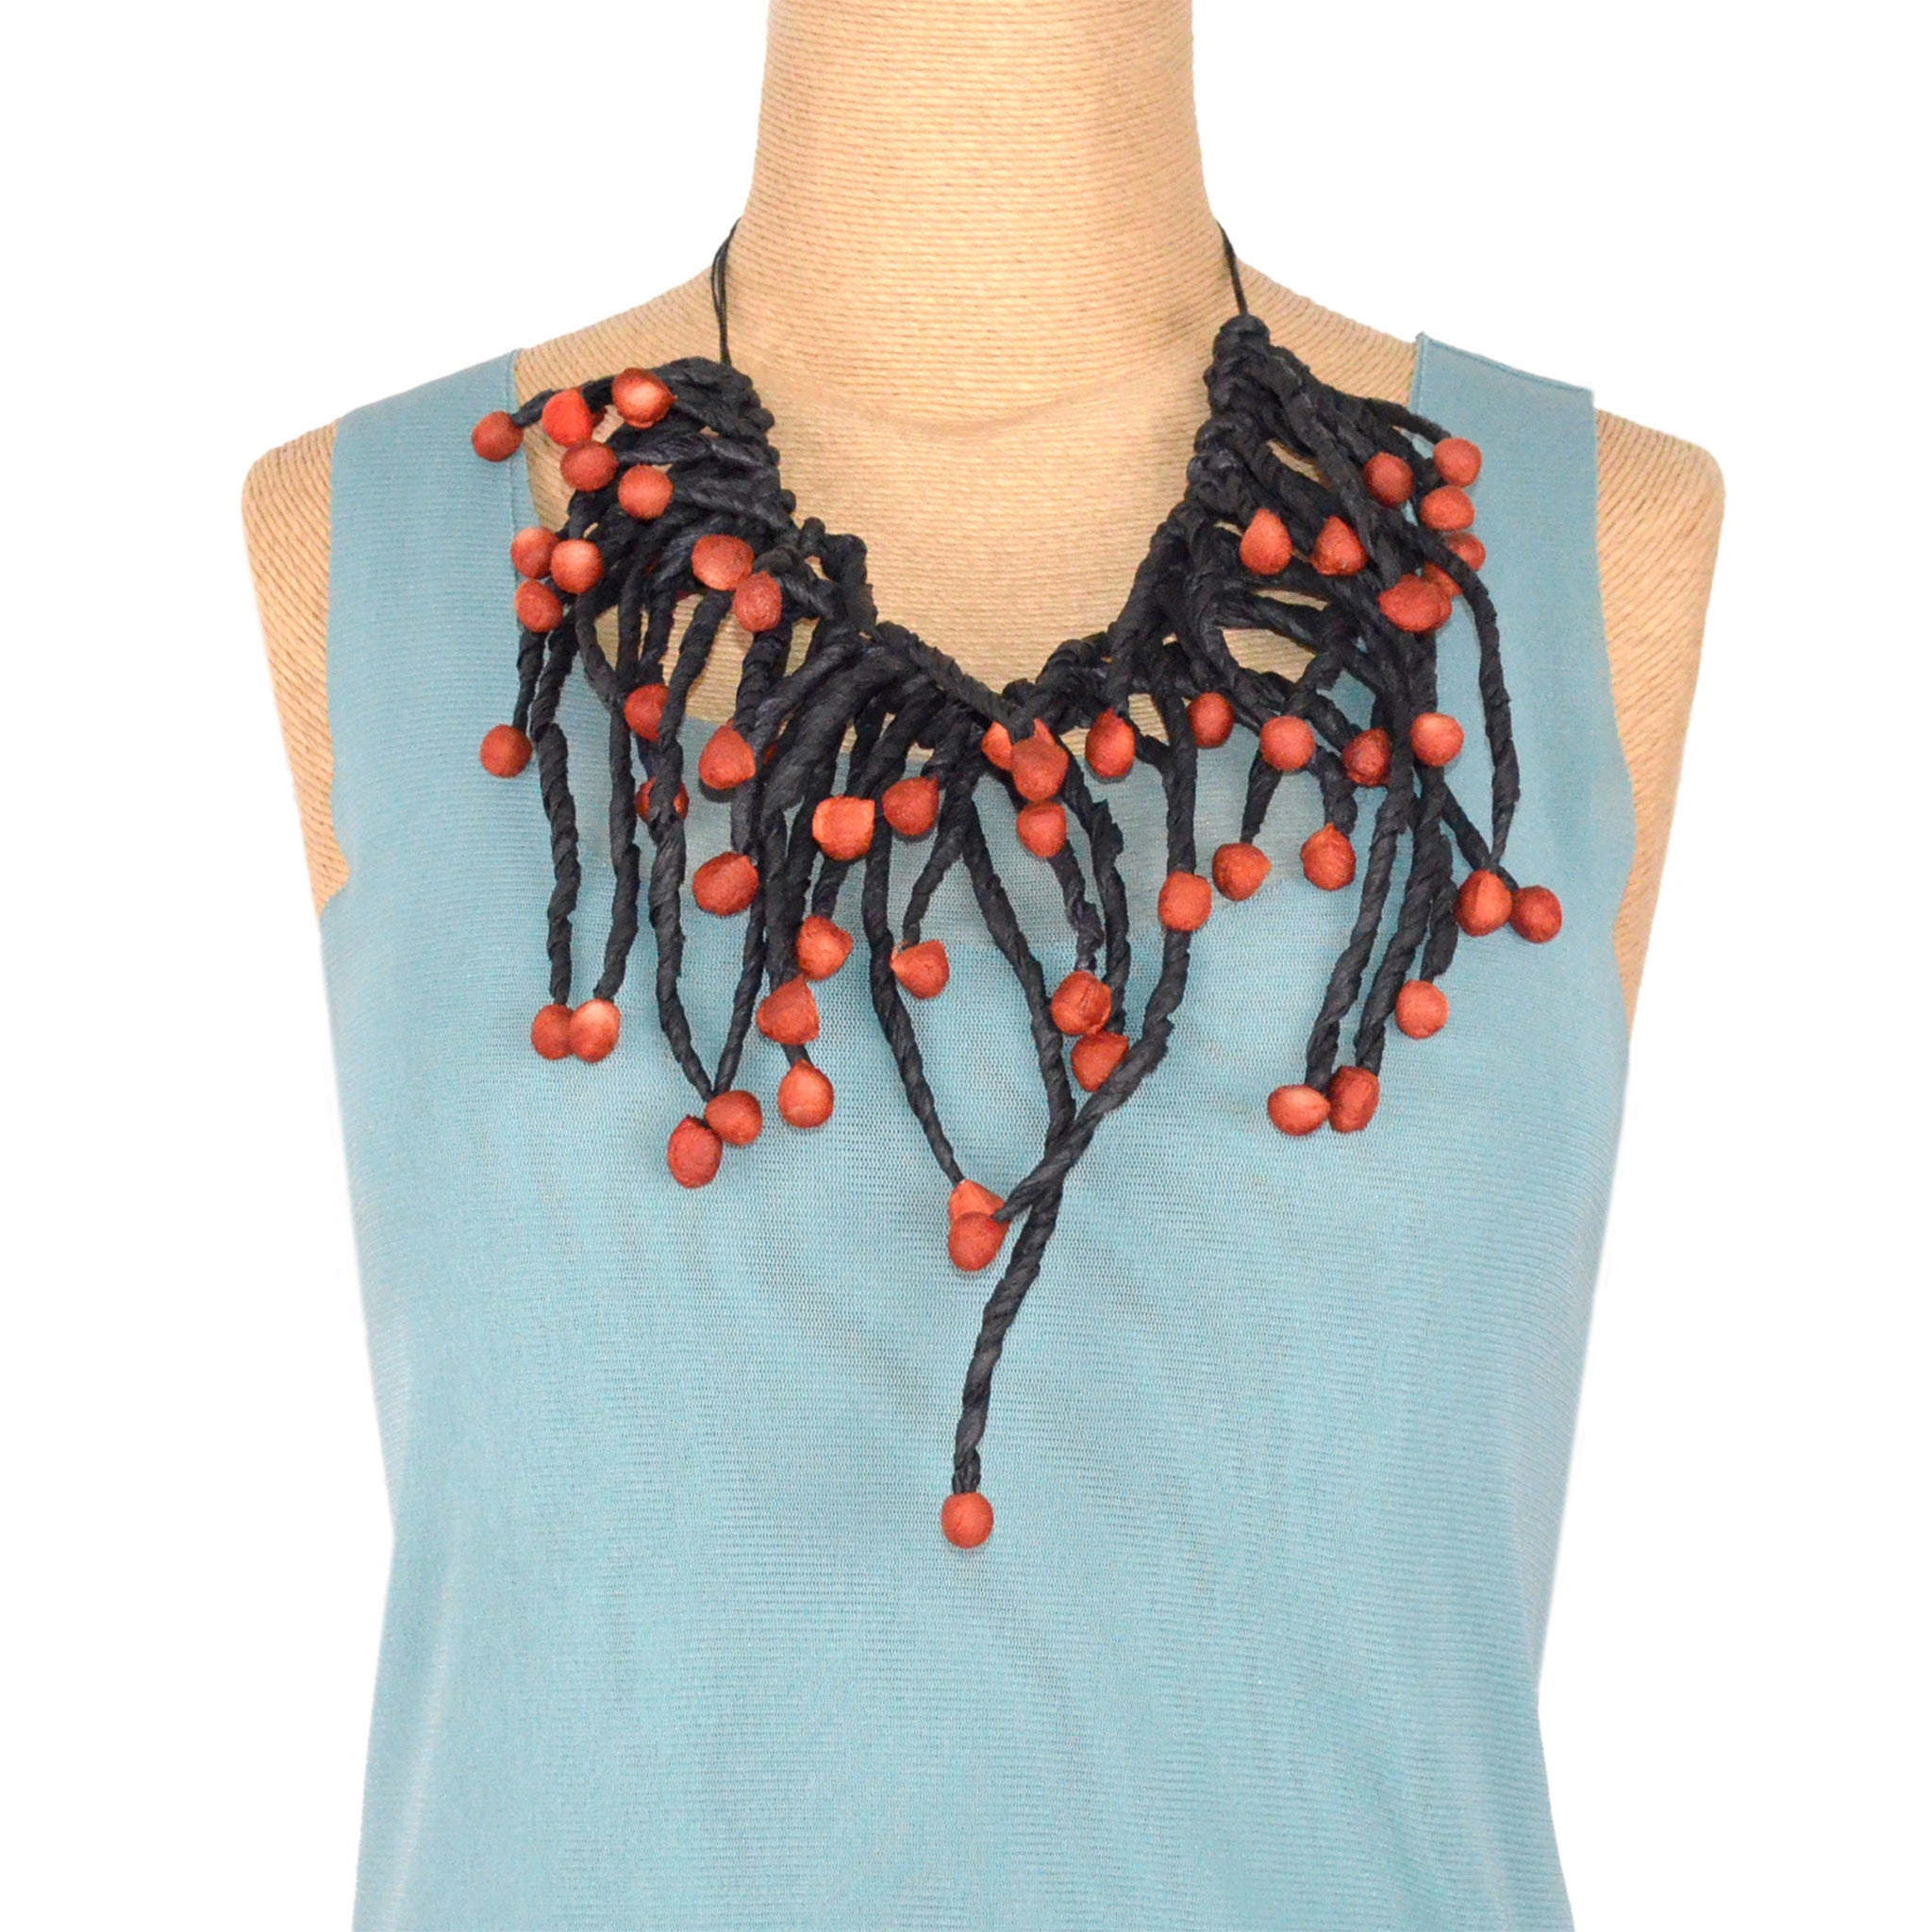 Ana Hagopian Necklace, Anemone